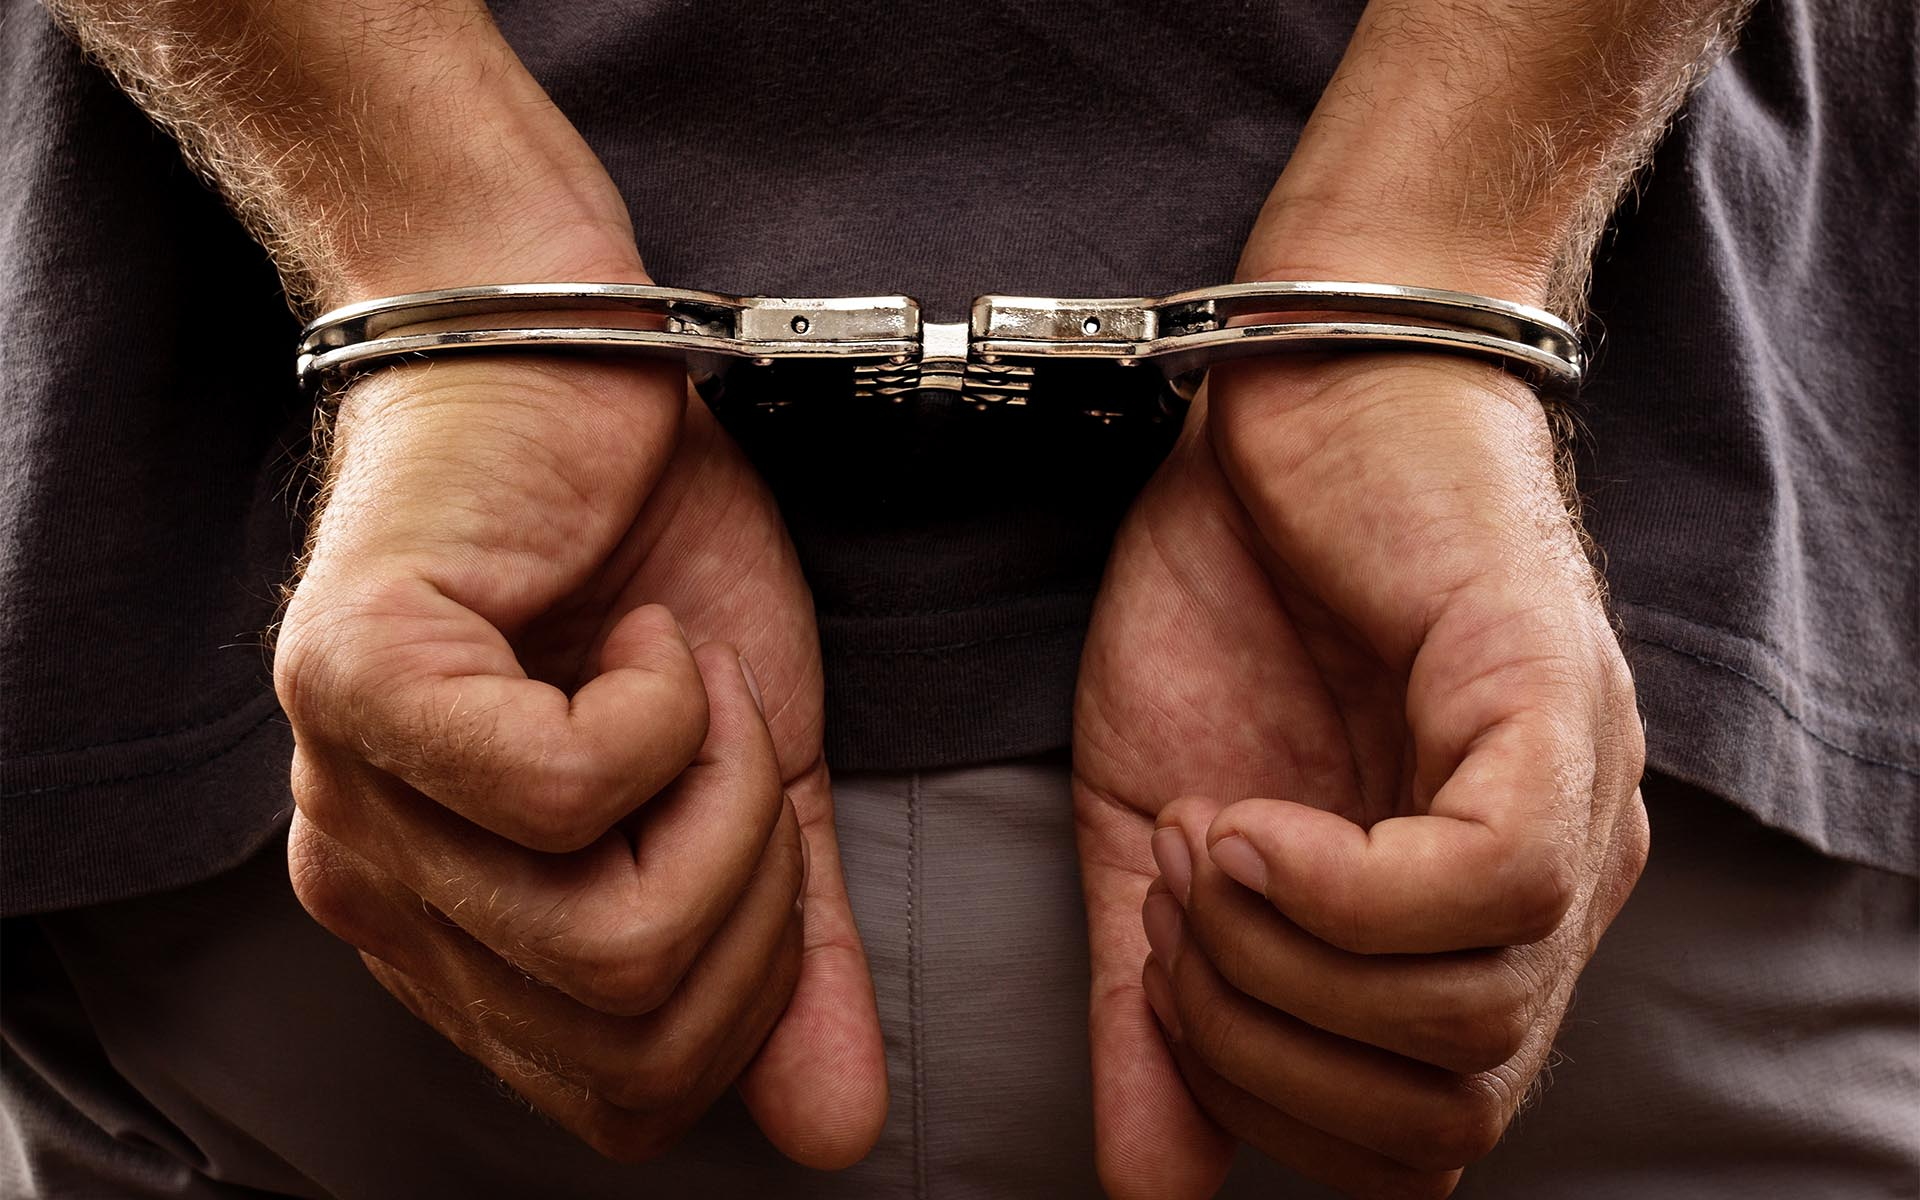 Russian National Arrested in Greece with Ties to Money Laundering, BTC-e, Mt. Gox Theft